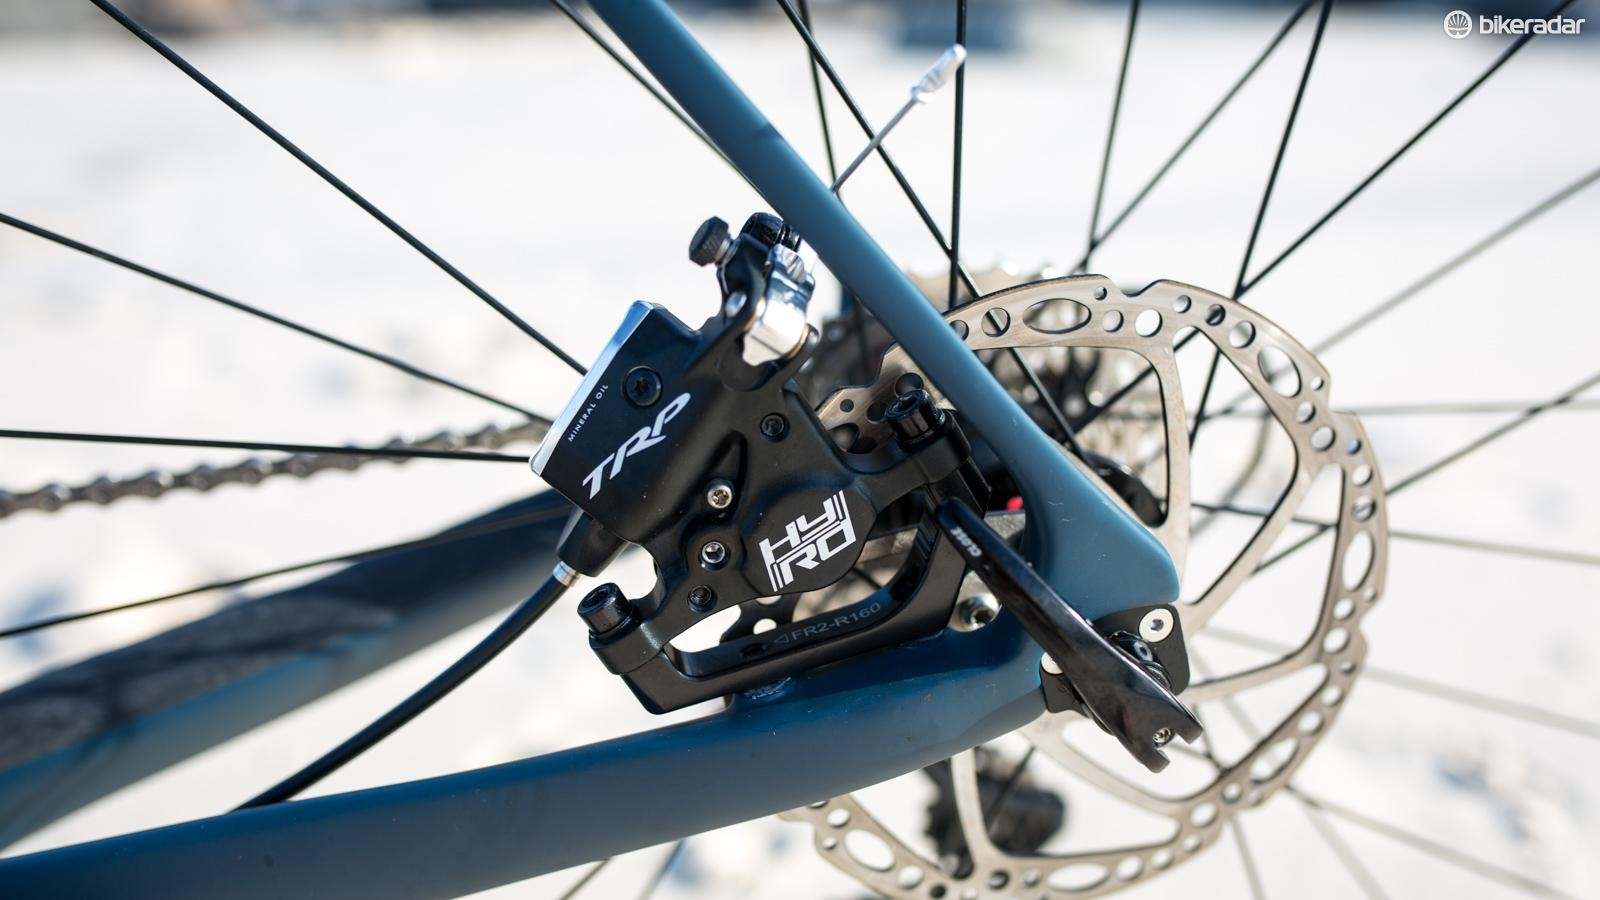 The trouble with the flat mount adaptor is it makes adjusting the rear brake caliper quite difficult